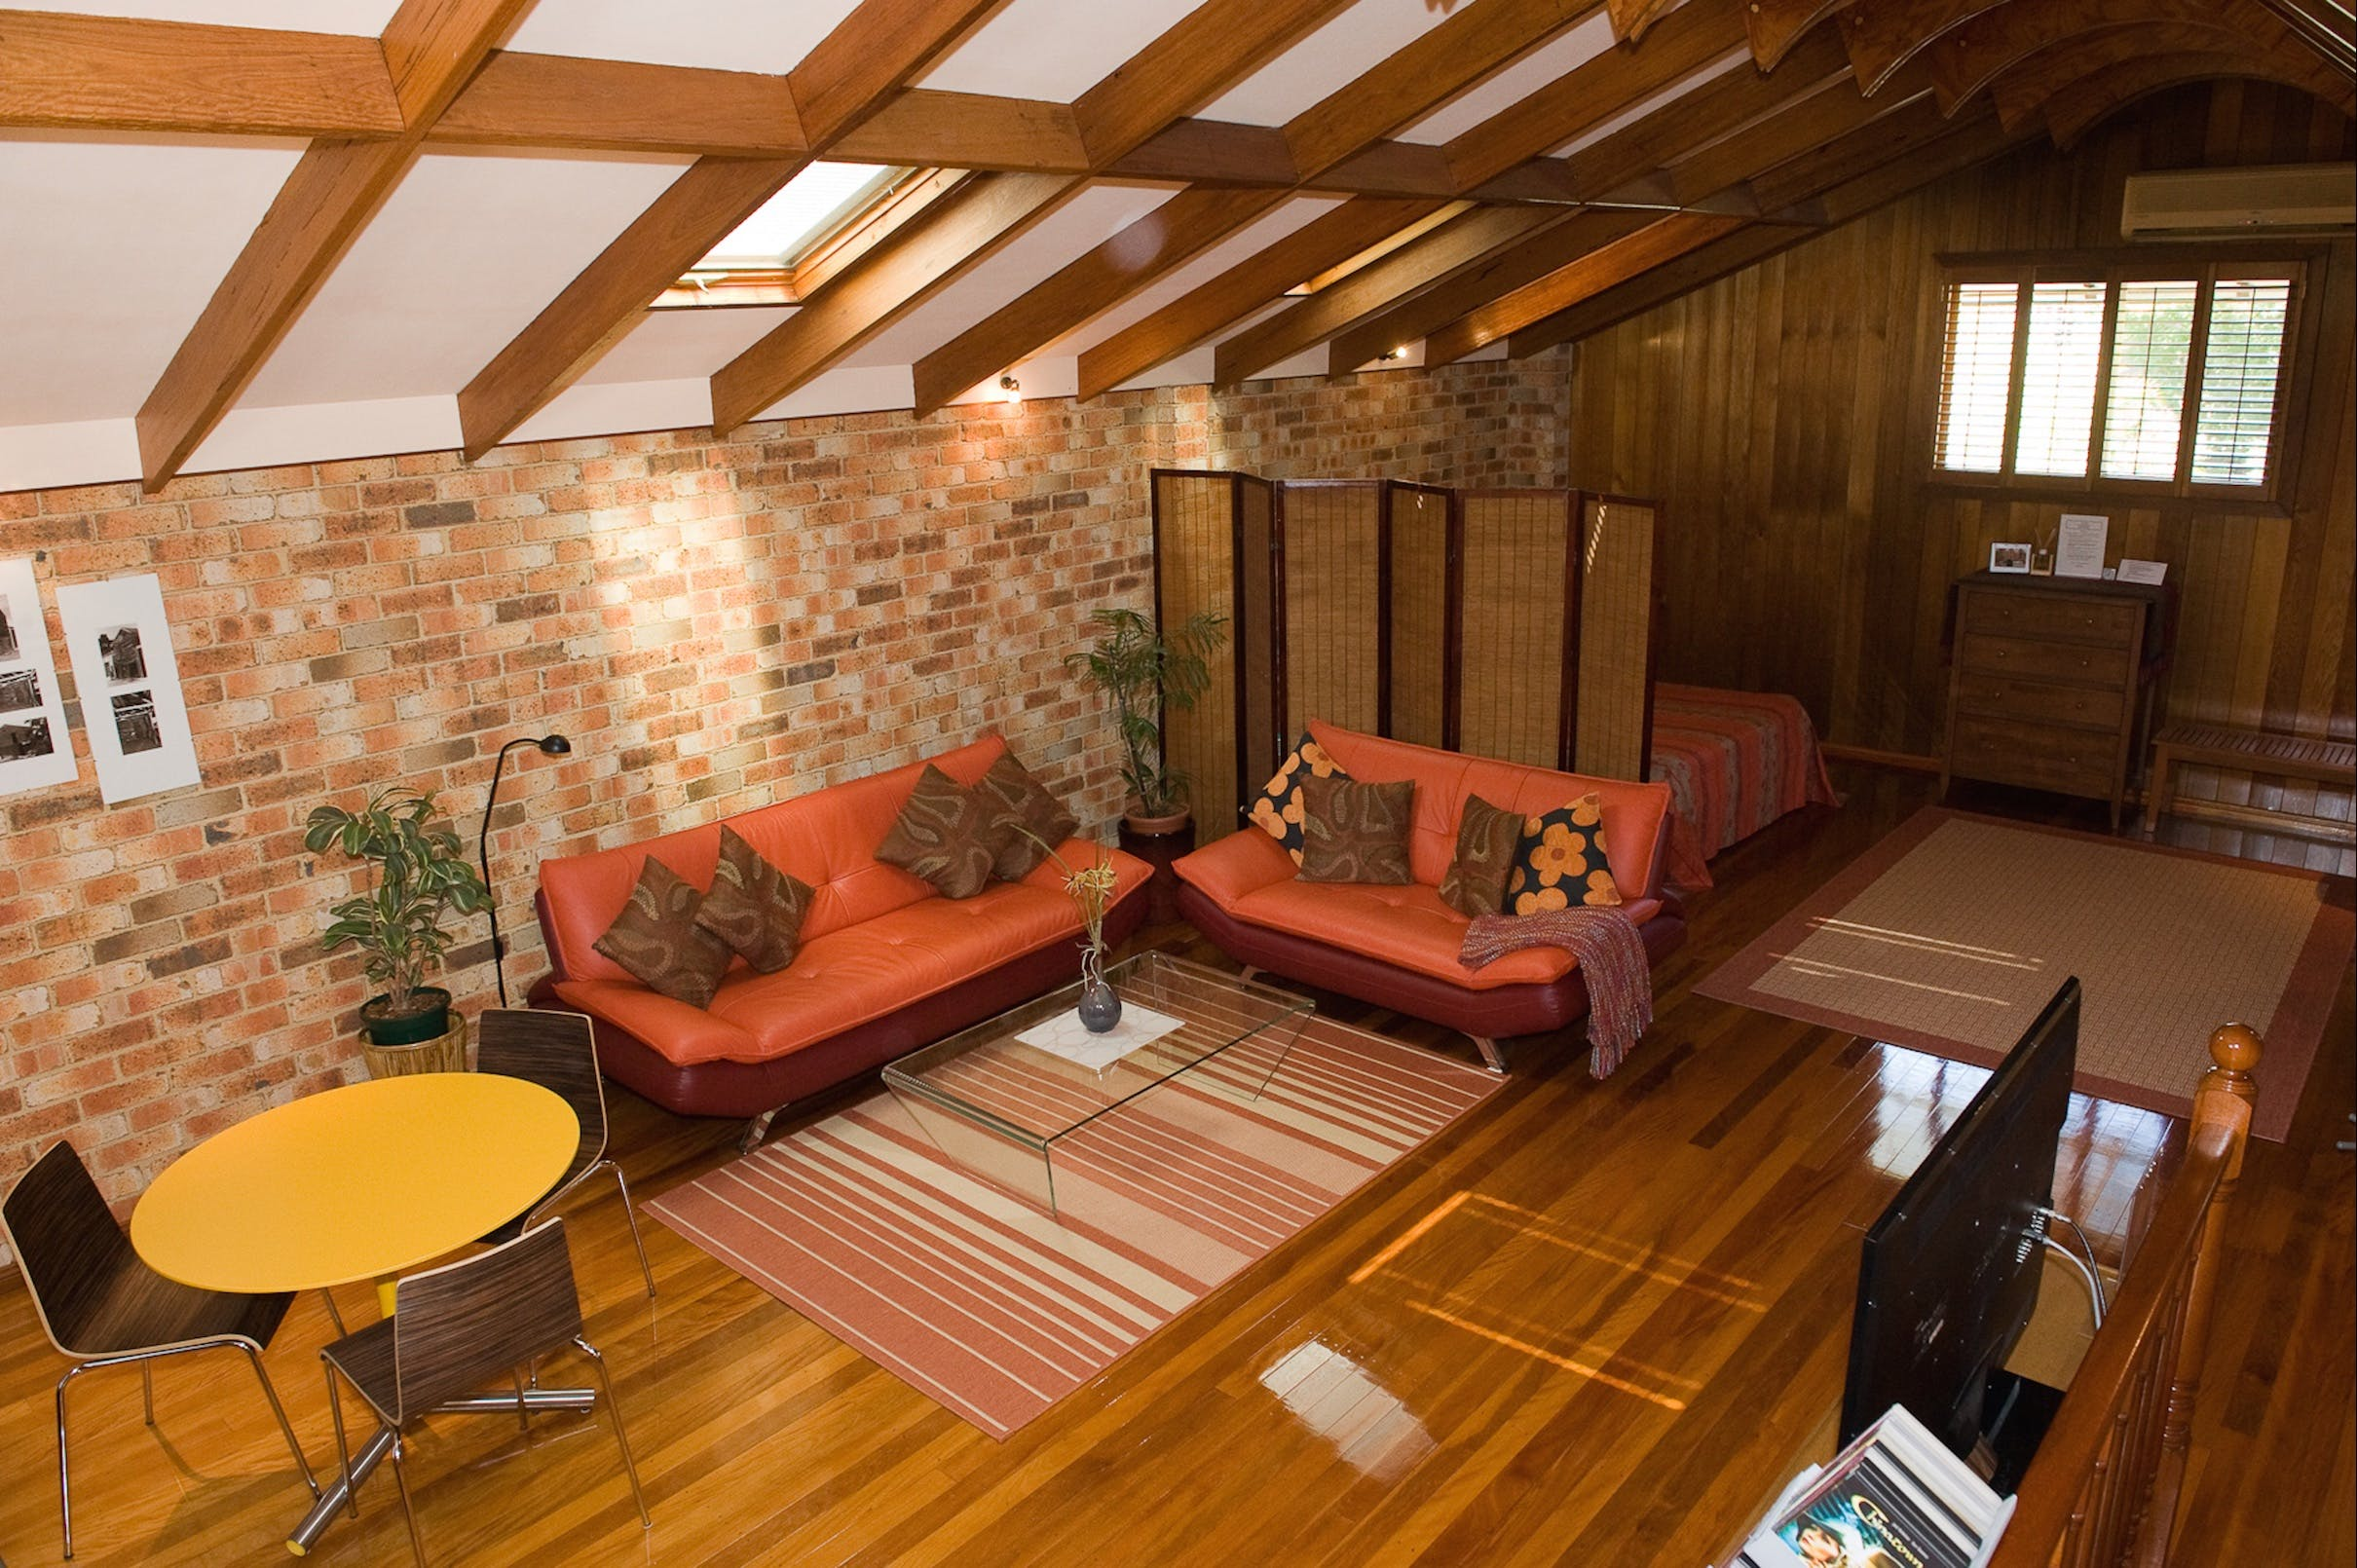 Bet's Bed and Breakfast Studio - Accommodation Sydney